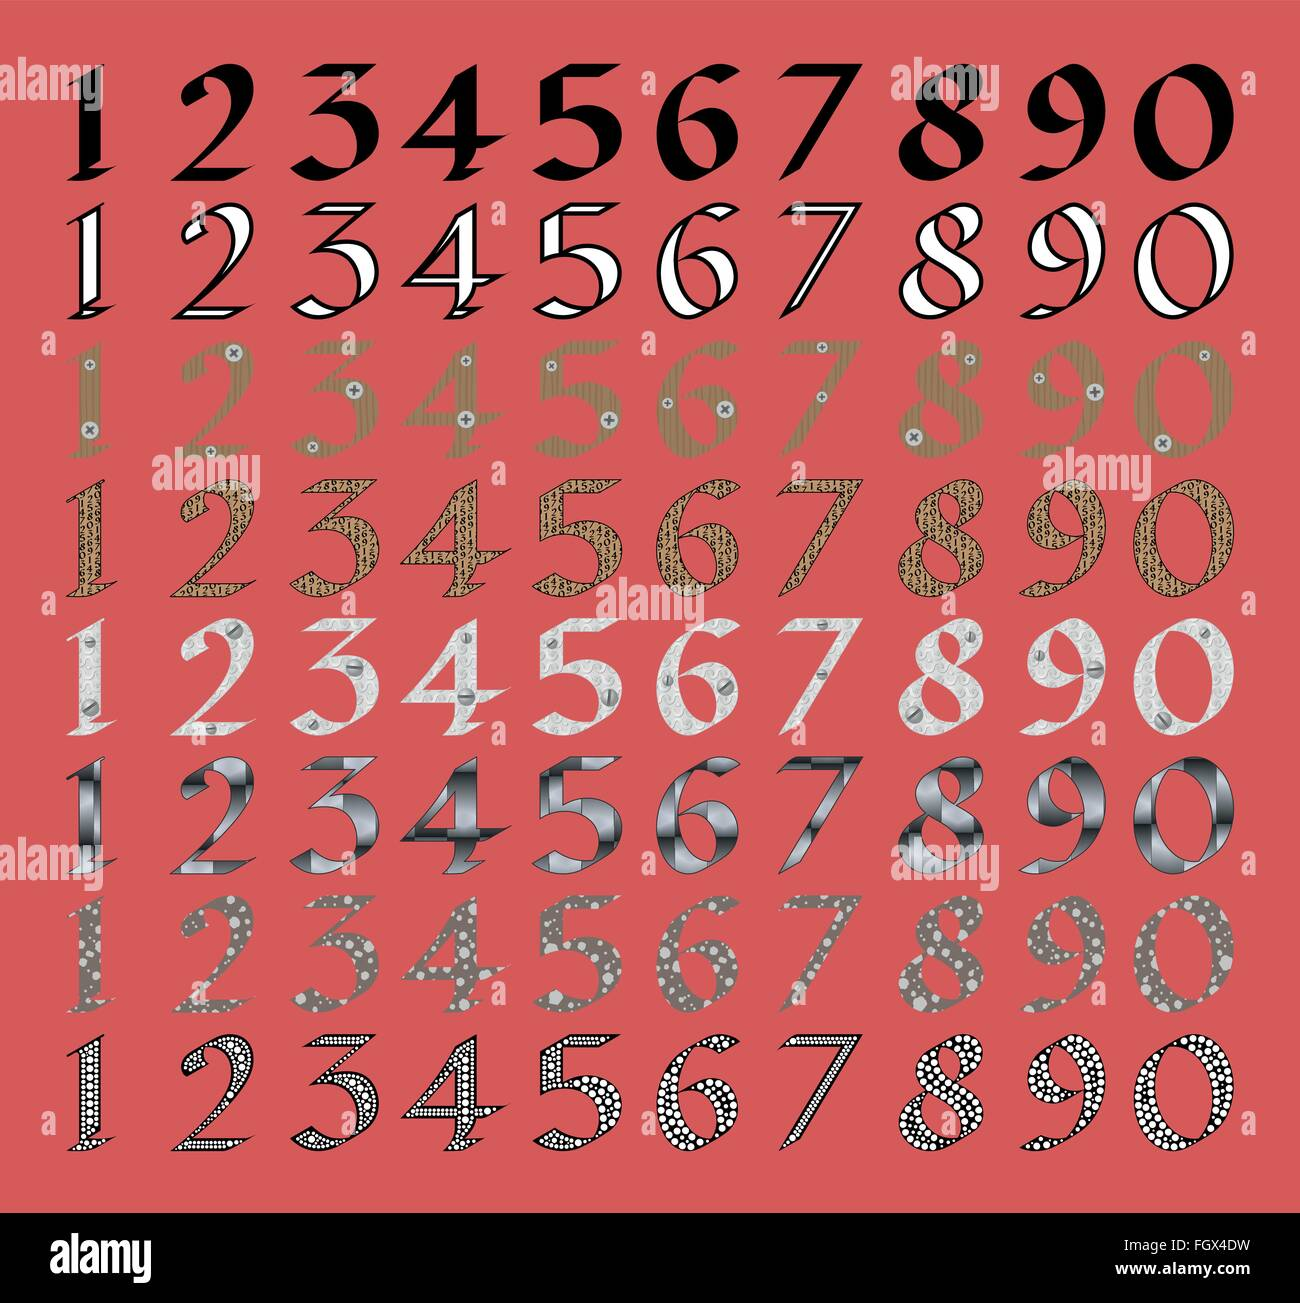 Calligraphic numeral set with different fills - Stock Image